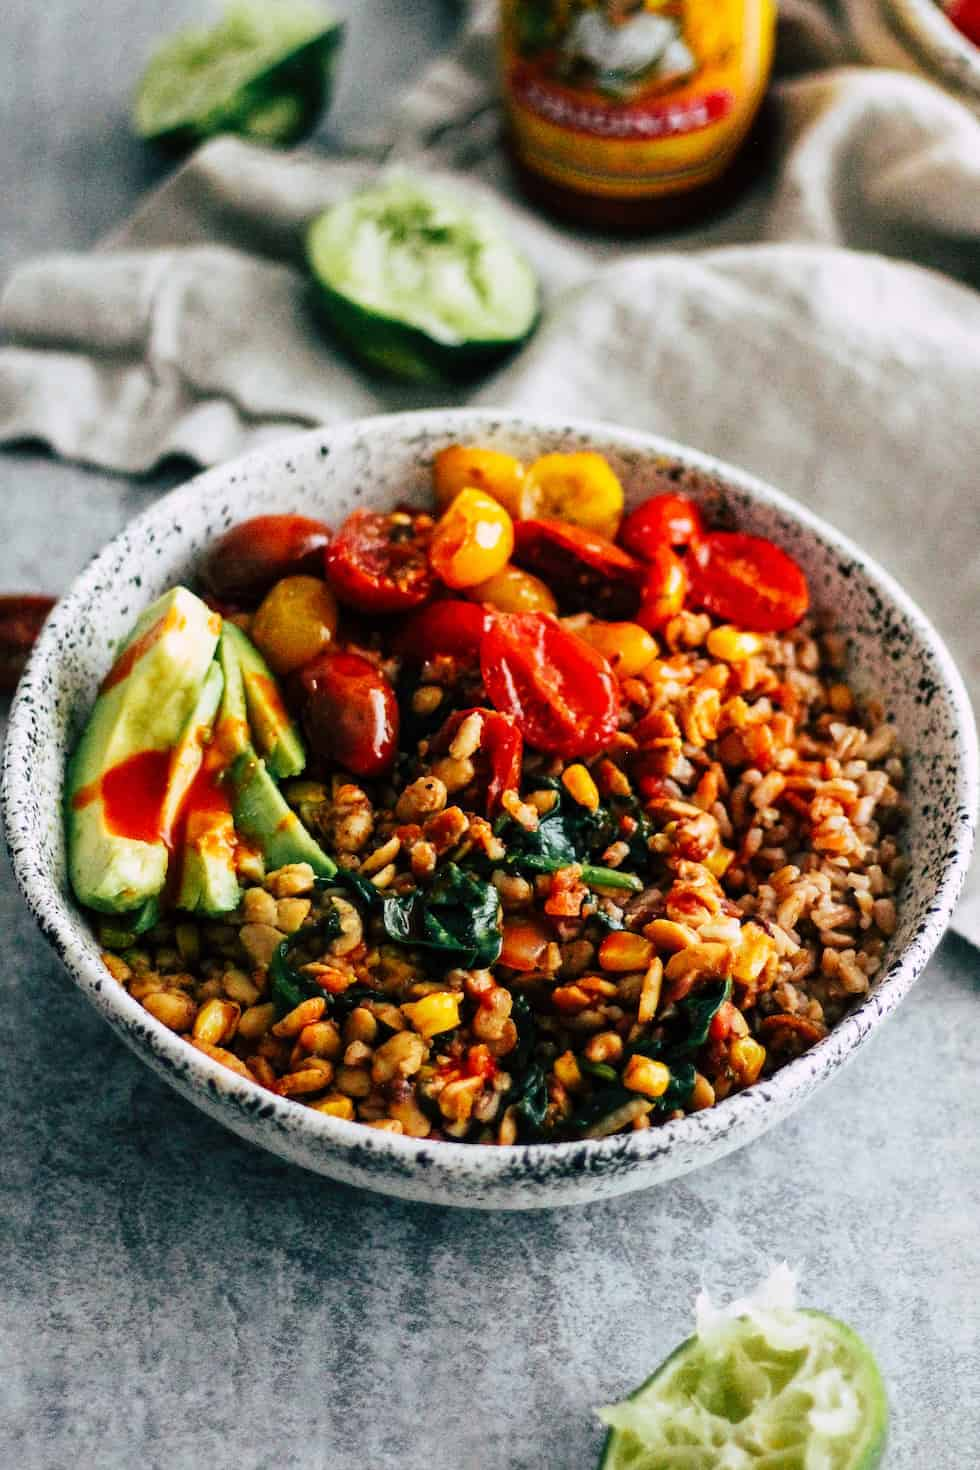 Vegetarian Tempeh Burrito Bowls in a ceramic bowl with linen napkin.